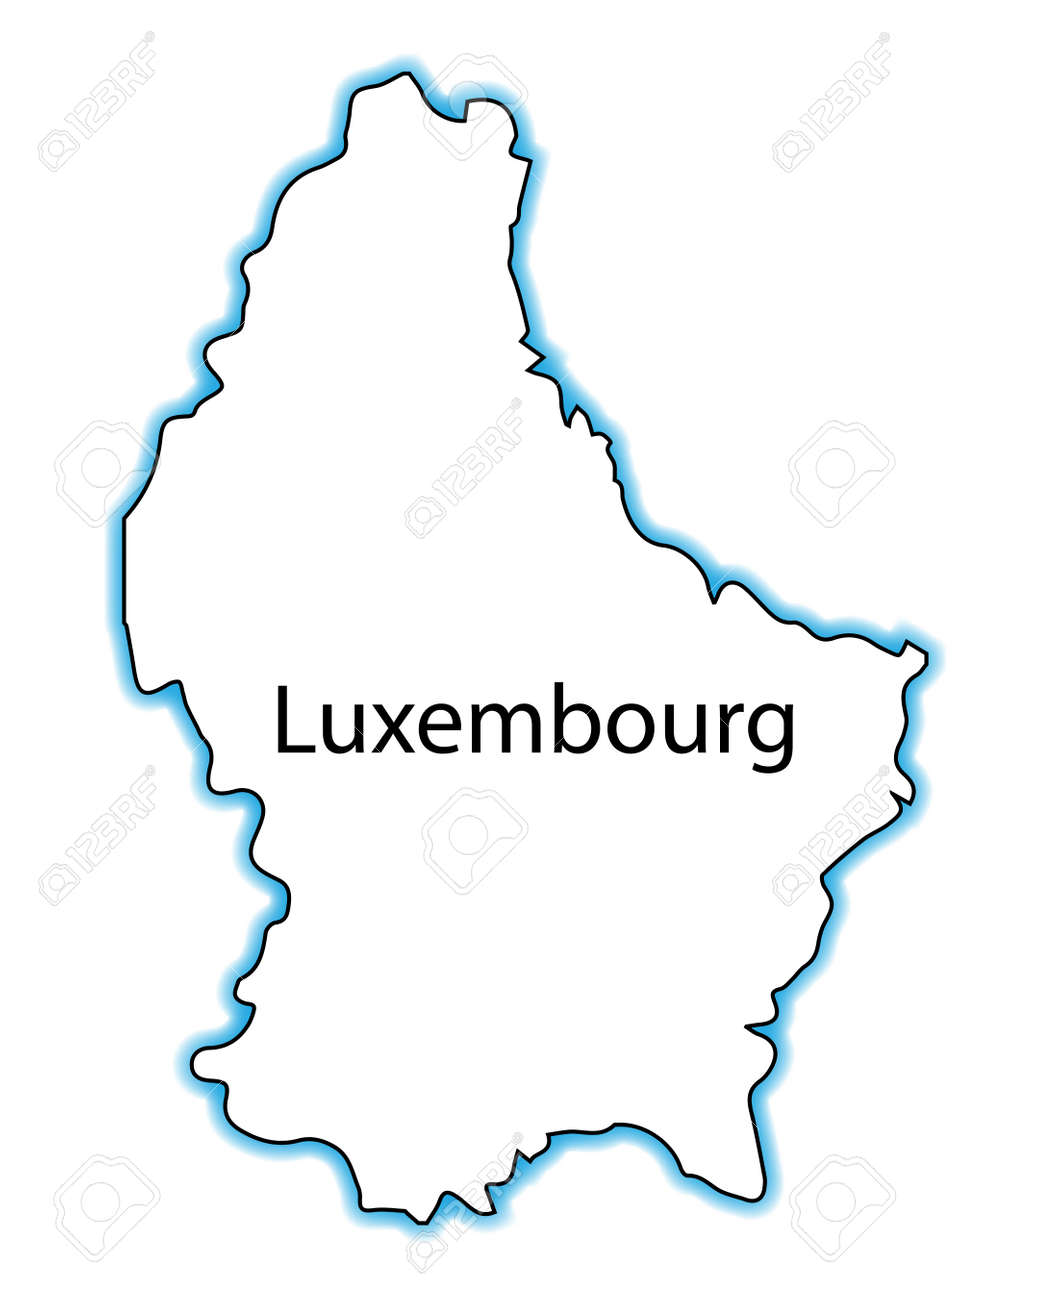 Outline Map Of Luxembourg Over A White Background Royalty Free - Luxembourg map vector